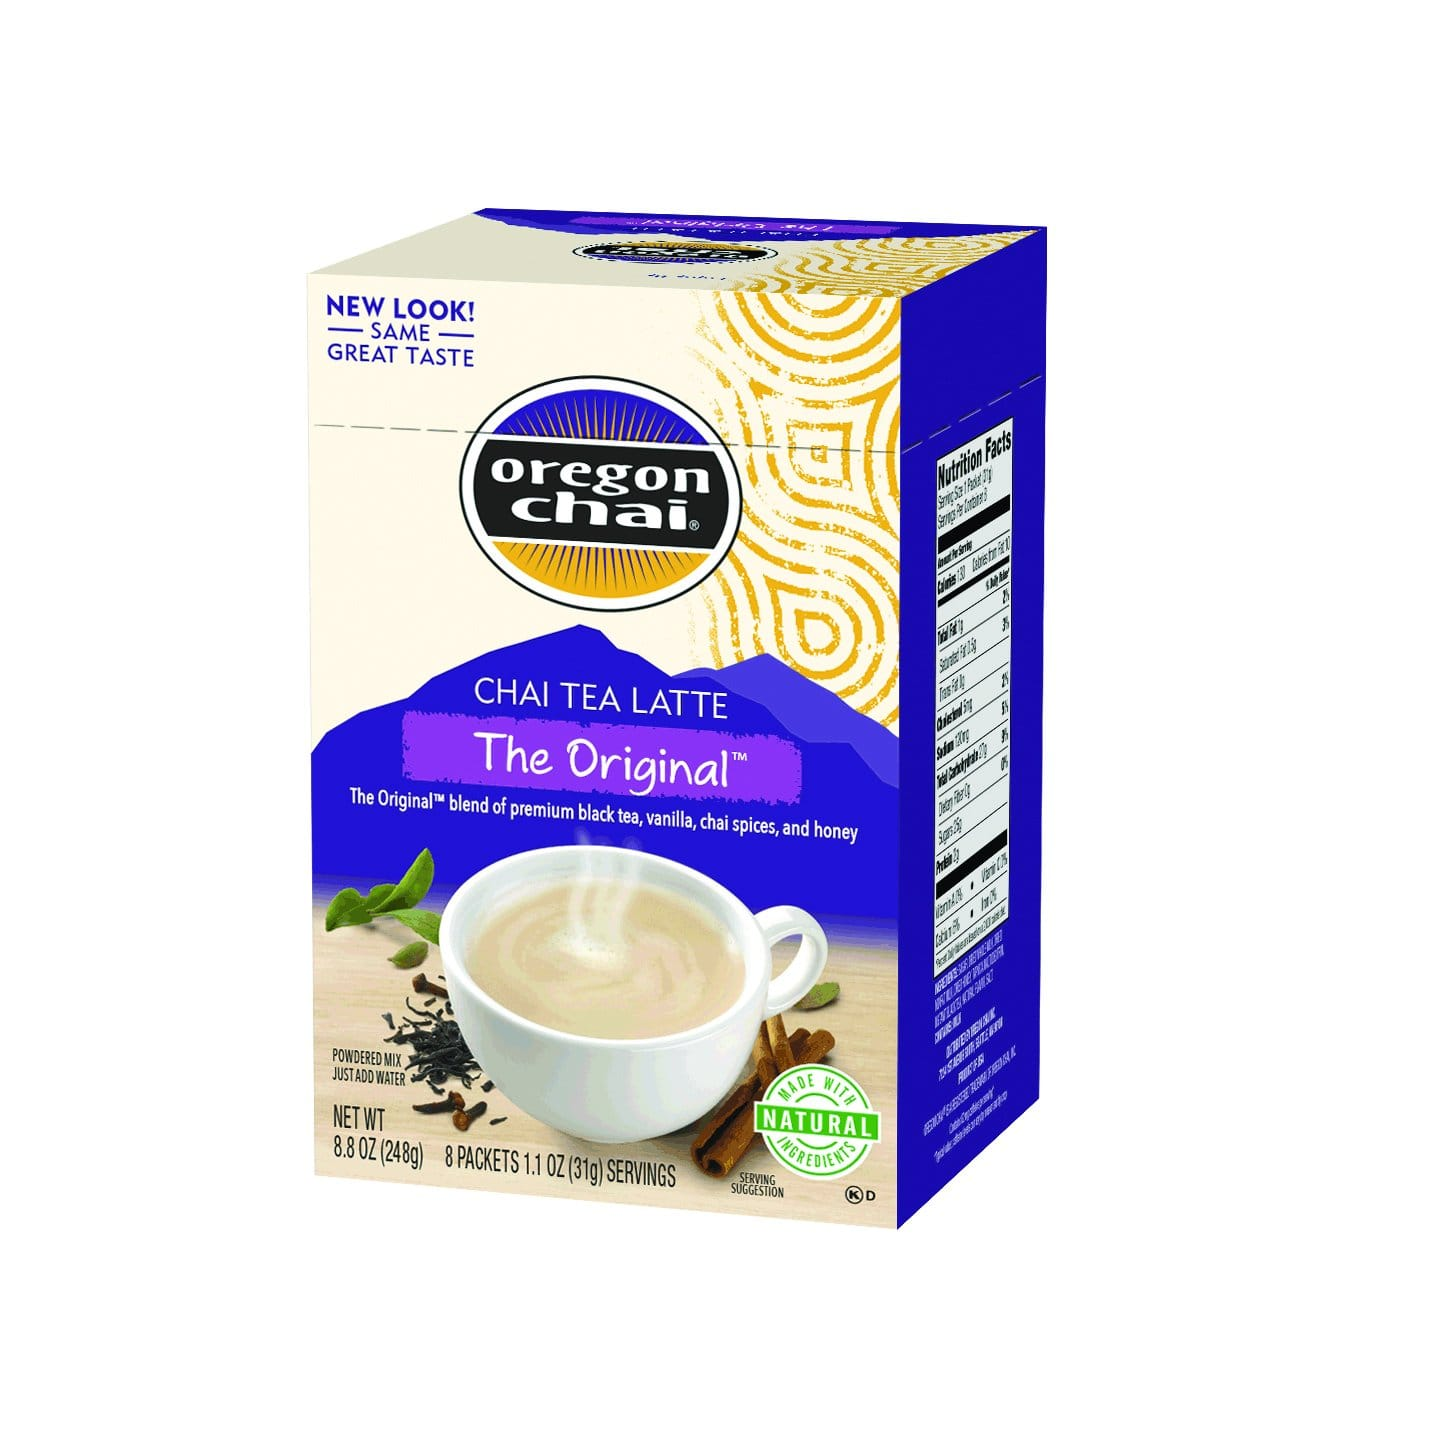 48 packets (3.3 lbs)  - Oregon Chai Original Chai Tea Latte Powdered Mix - $11.69 at Amazon + FS with Prime (or less w/ subscribe and save)